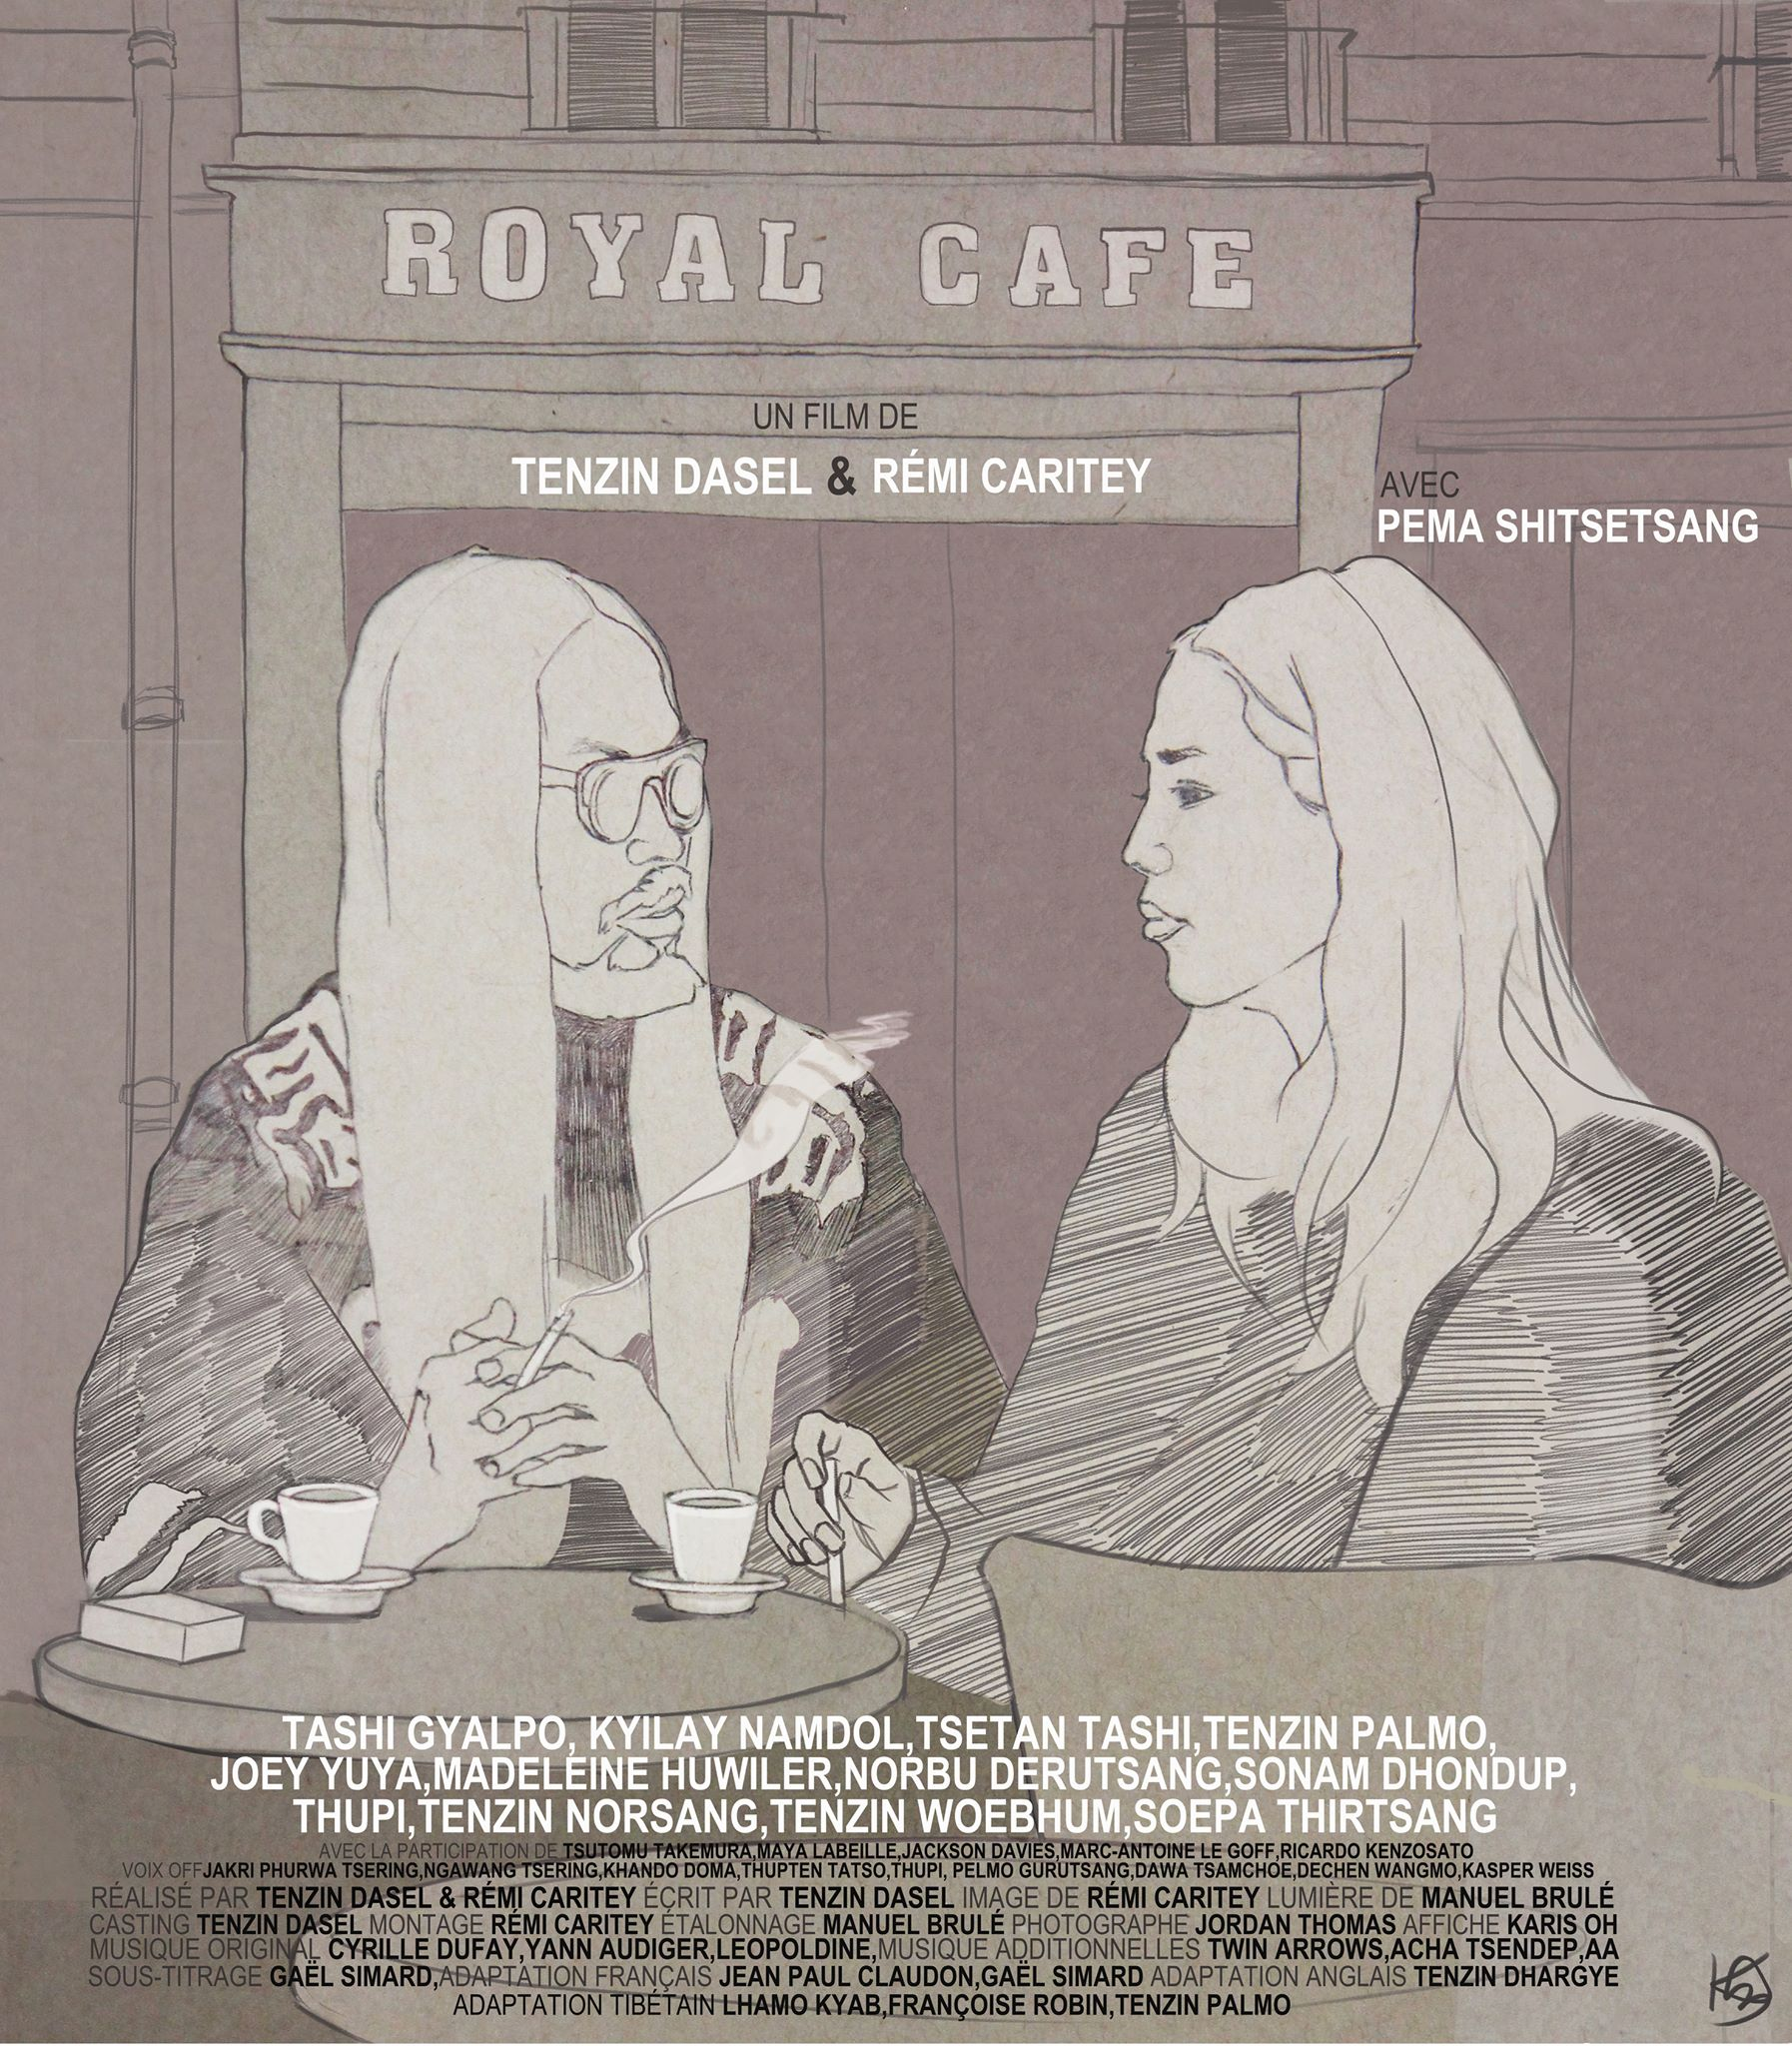 - ROYAL CAFE, 2016 (France)A Swiss-Tibetan filmmaker moves to Paris, where she wants to make a film about the local Tibetan community. To do so, she starts hanging out at Royal Cafe, one of the meeting places for Tibetans in Paris. Here she meets people with different backgrounds and experiences of being part of the Tibetan diaspora.Director: Tenzin Dazel & Rémy CariteyLength: 39minWhere and When: Deptford Cinema, Sunday 2 December, 5.30pm